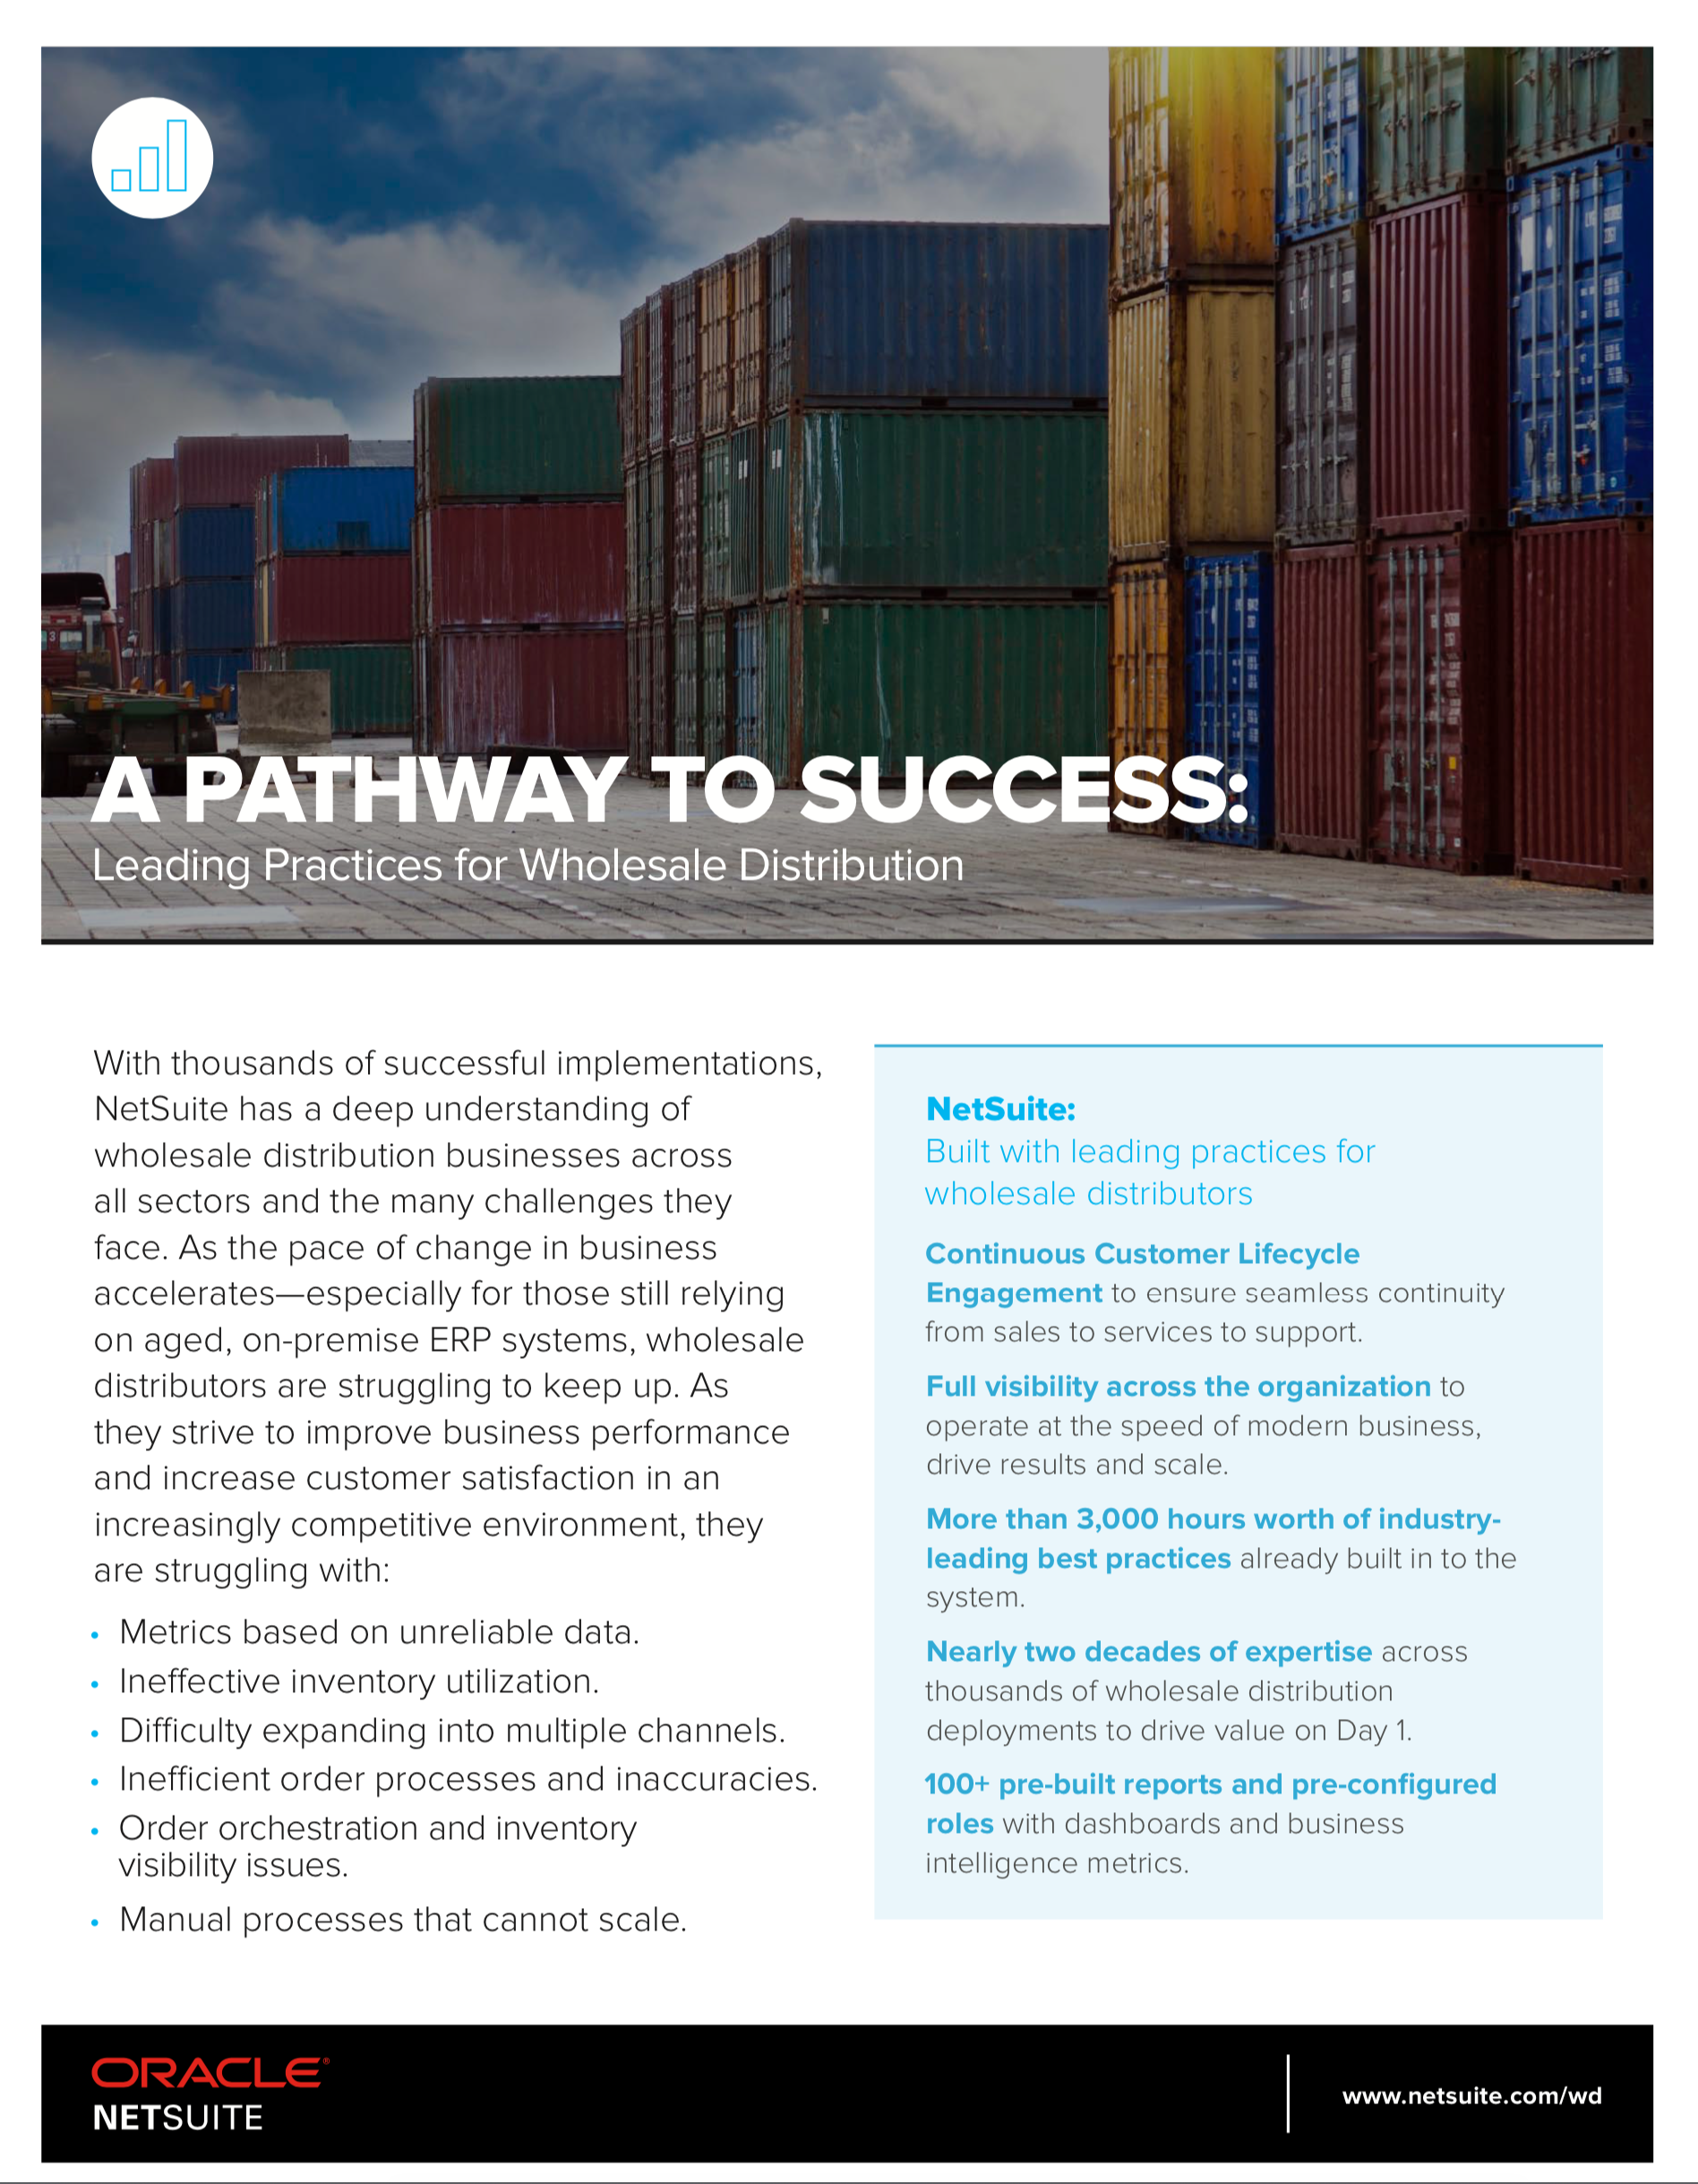 A Pathway to Success: Leading Practices for Wholesale Distribution